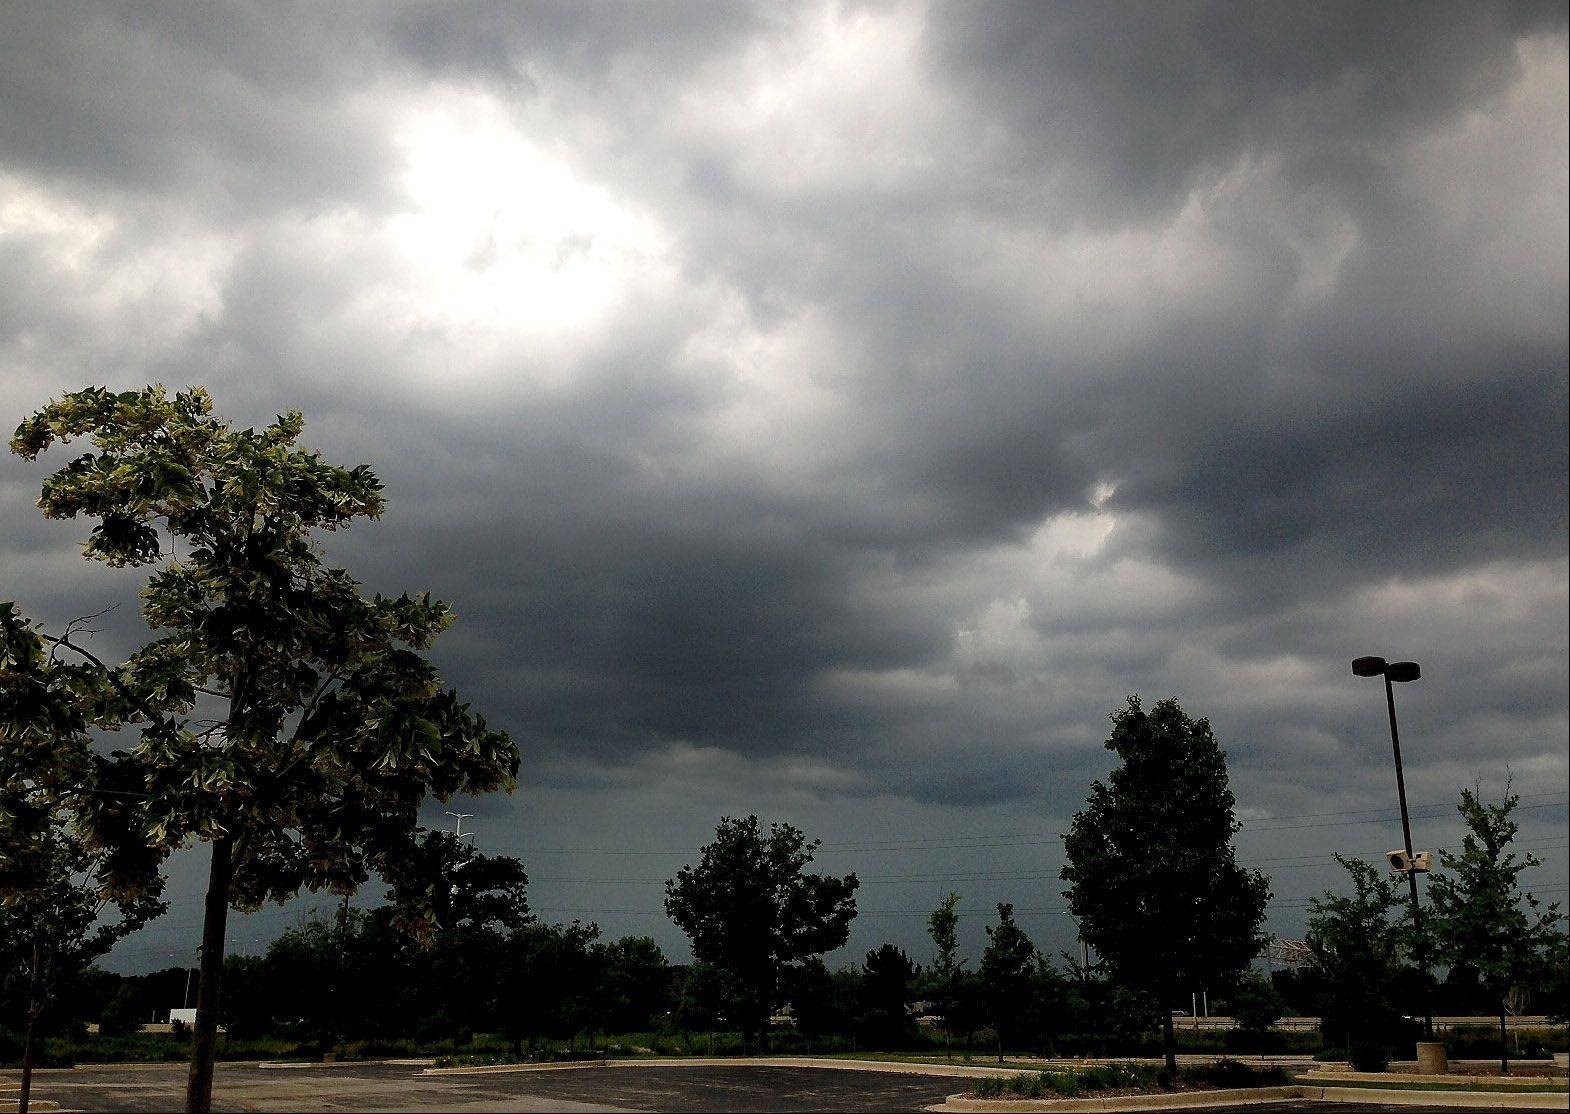 Clouds darken the skies over Warrenville on Friday.